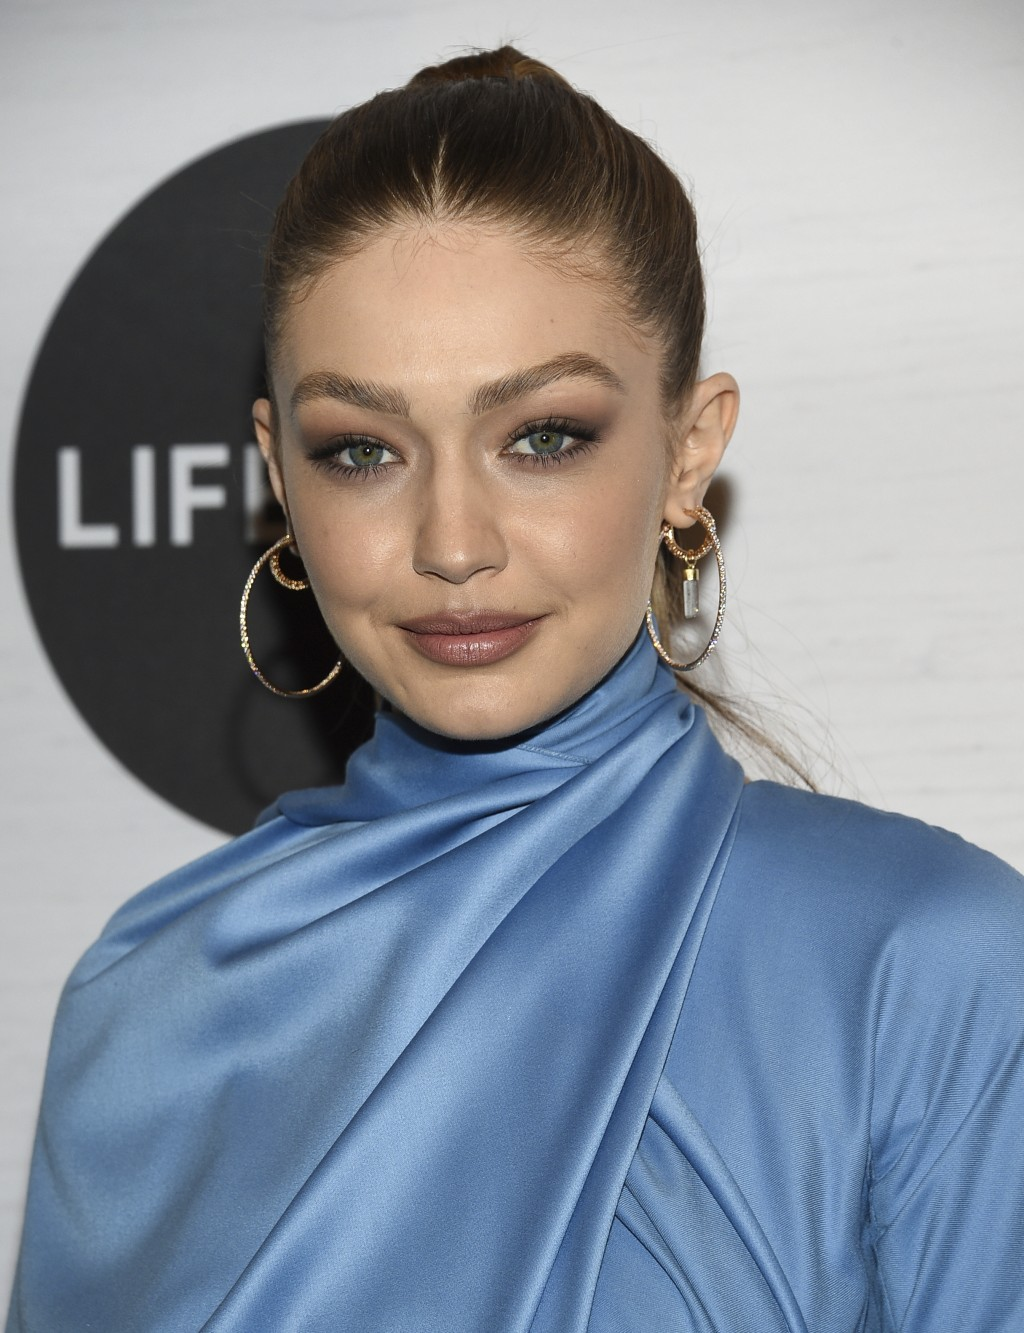 Honoree Gigi Hadid attends Variety's Power of Women: New York presented by Lifetime at Cipriani 42nd Street on Friday, April 5, 2019, in New York. (Ph...